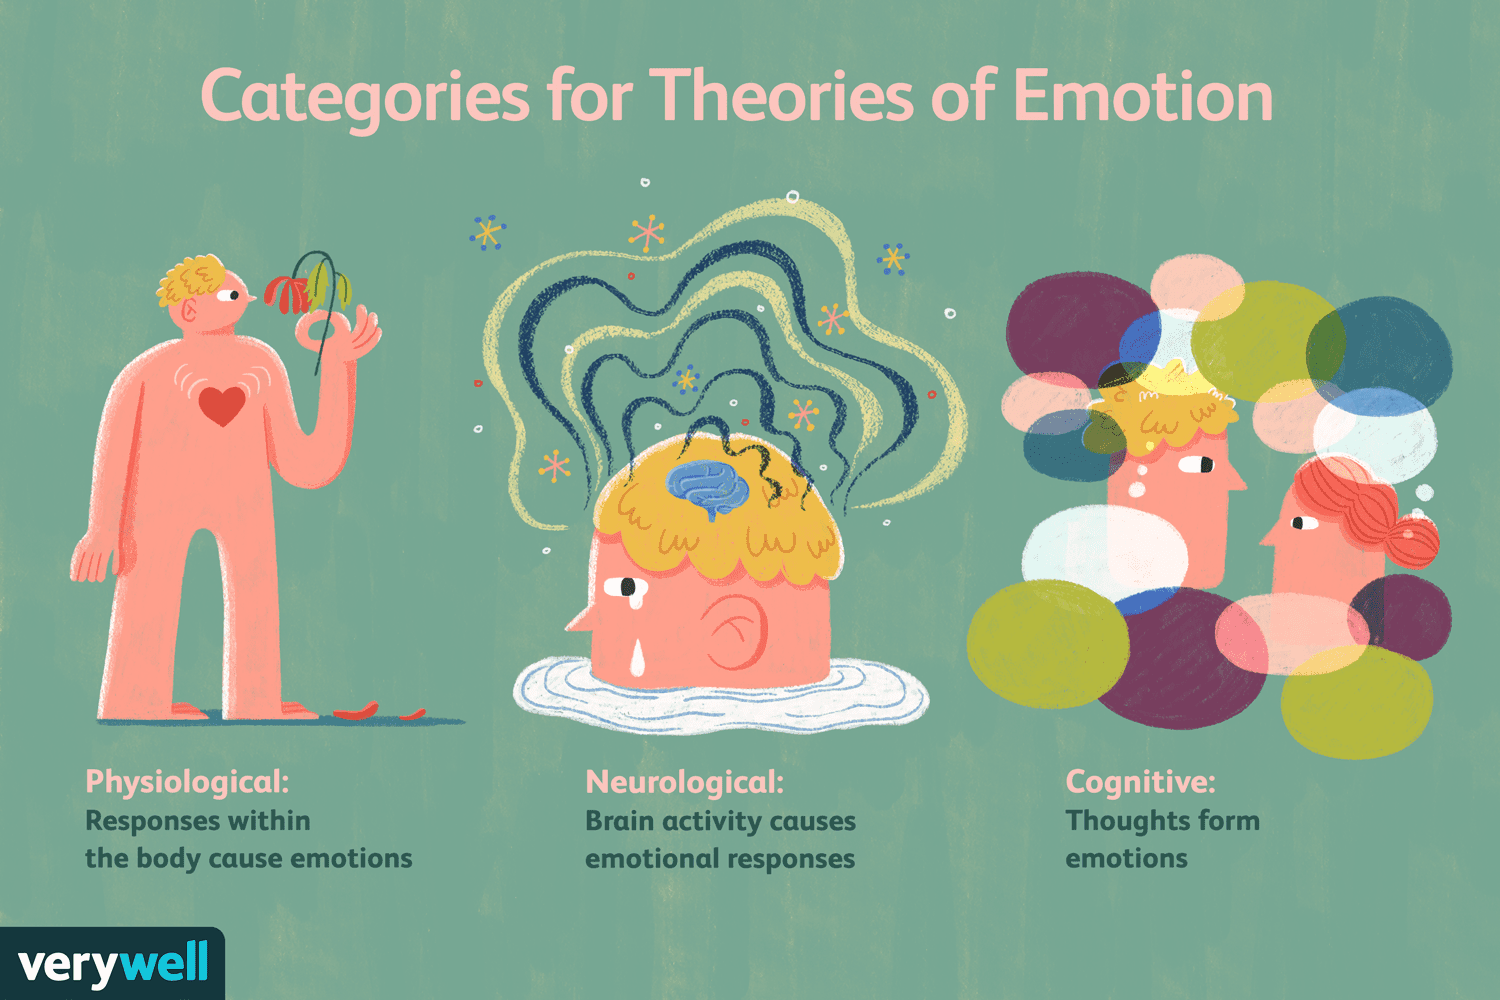 Categories for theories of emotion